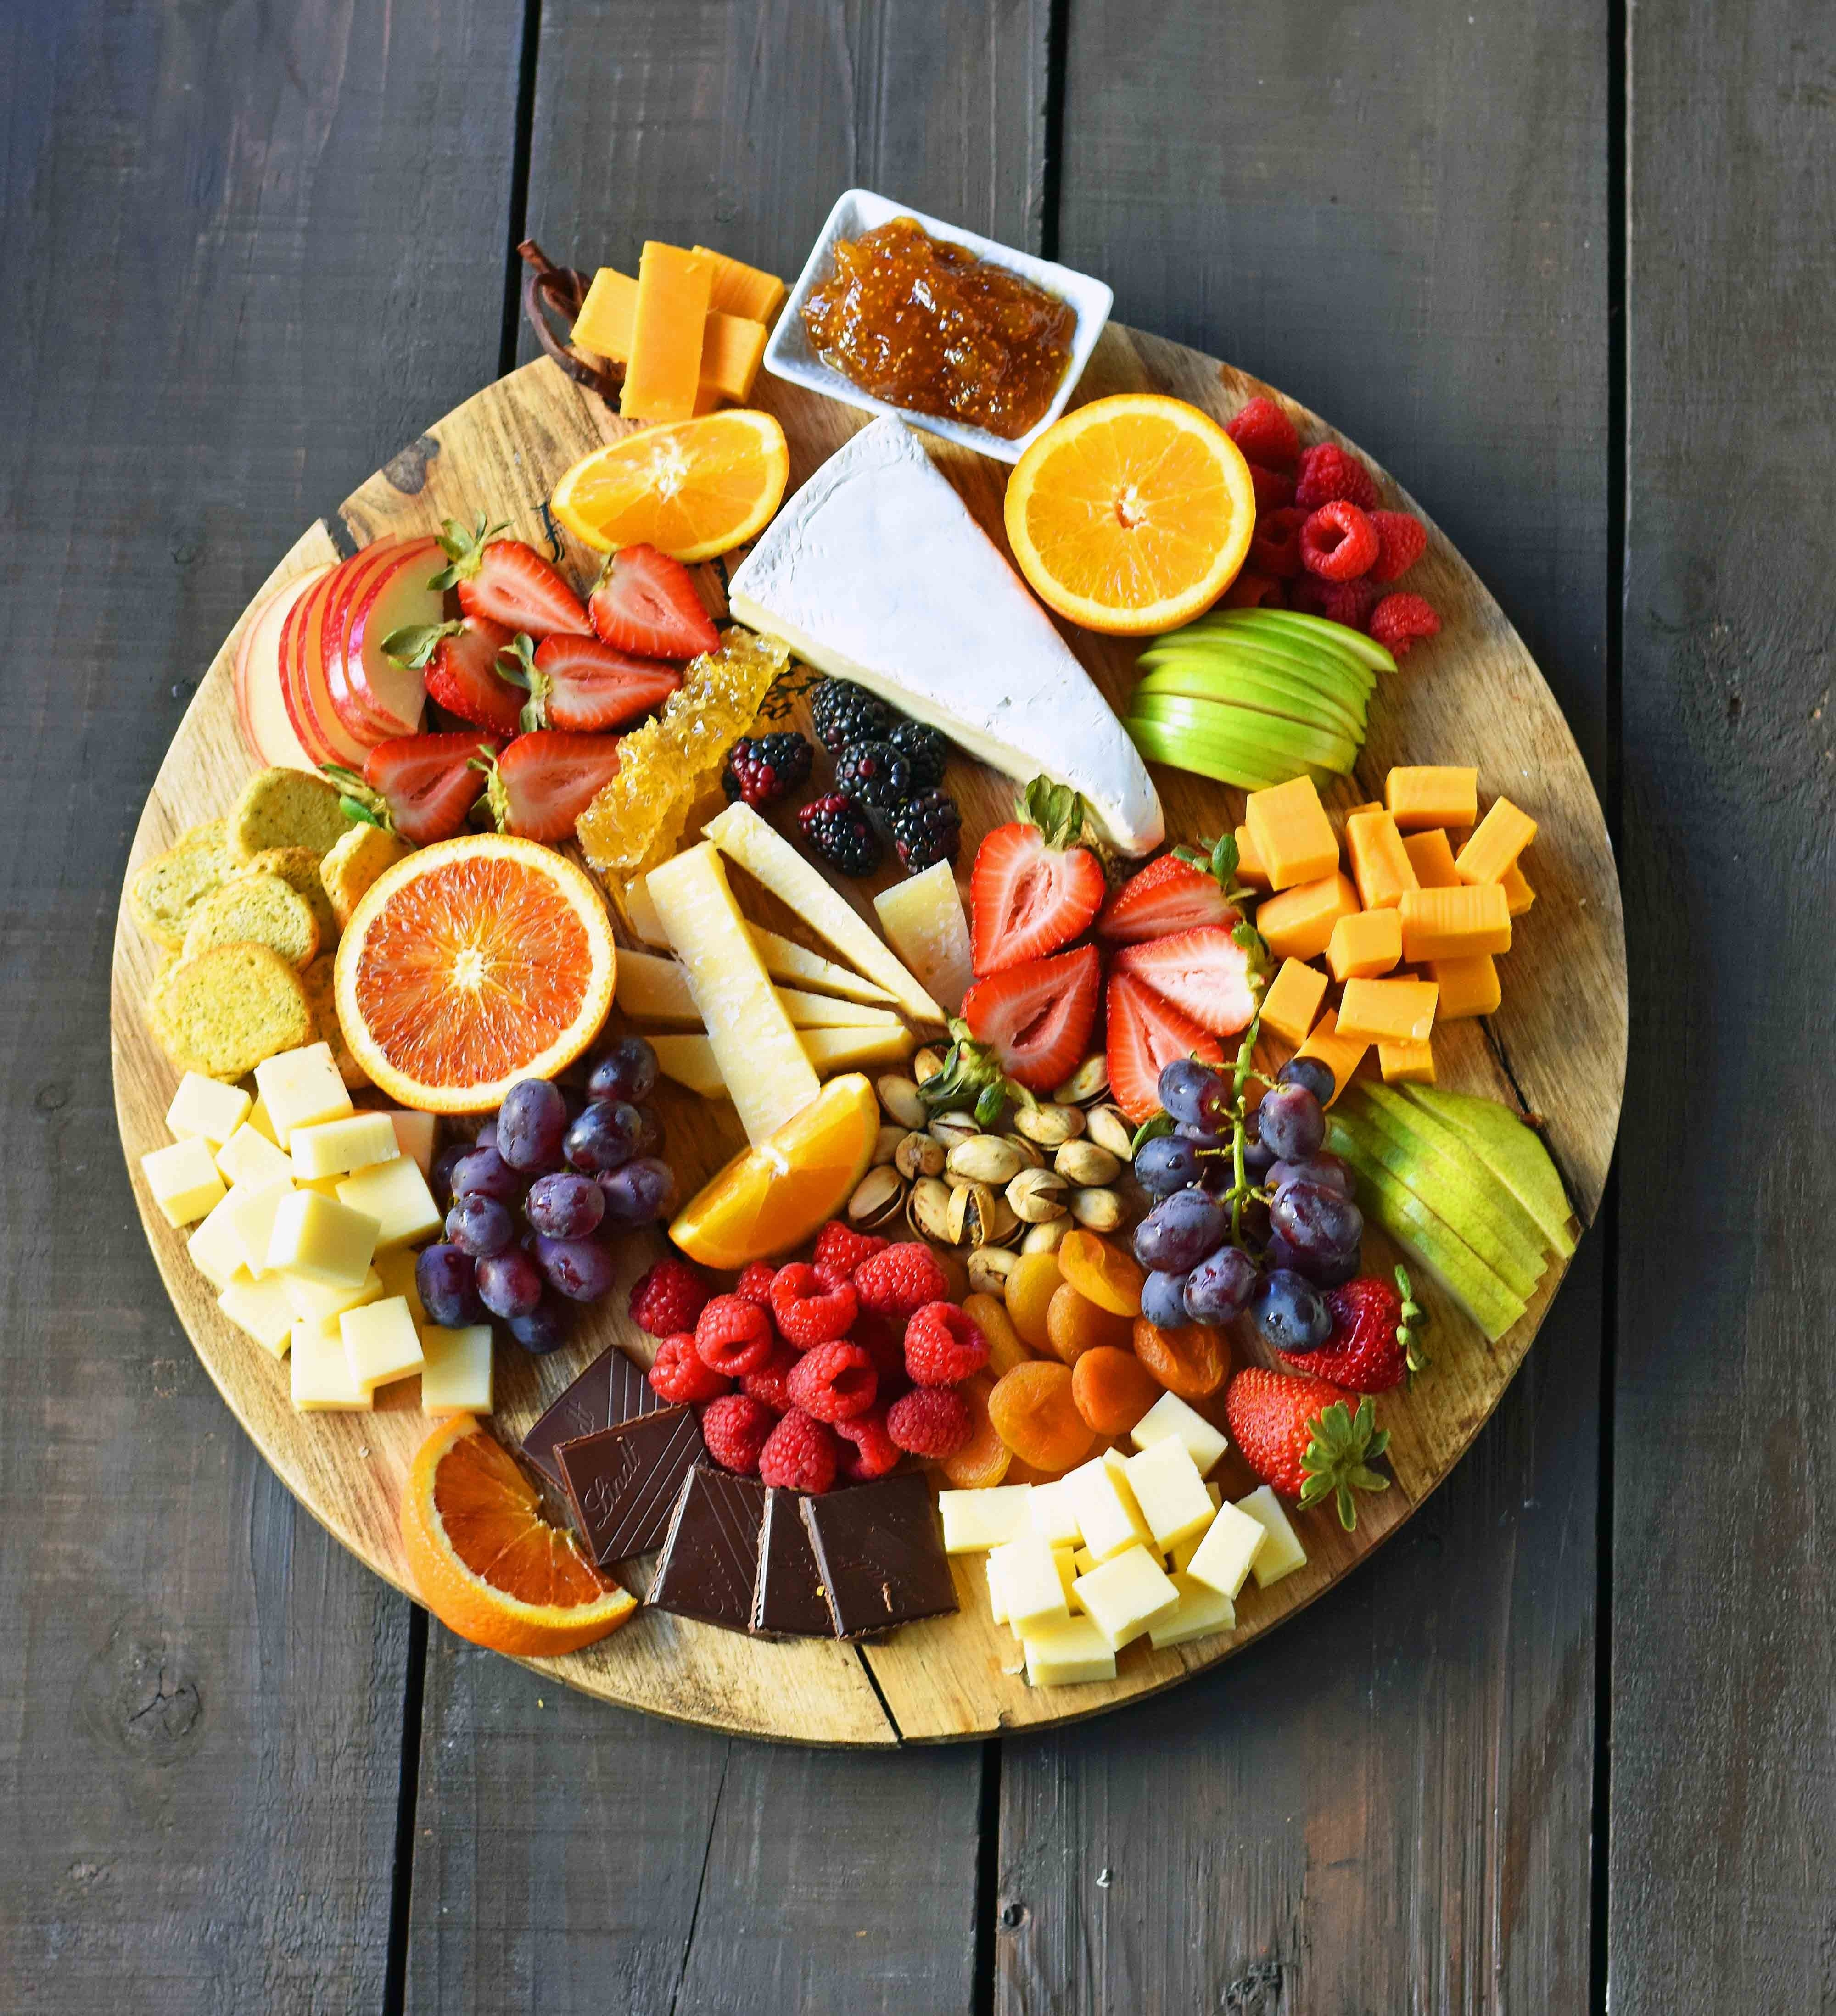 10 Perfect Fruit And Cheese Platter Ideas how to make the best fruit and cheese board modern honey 2021